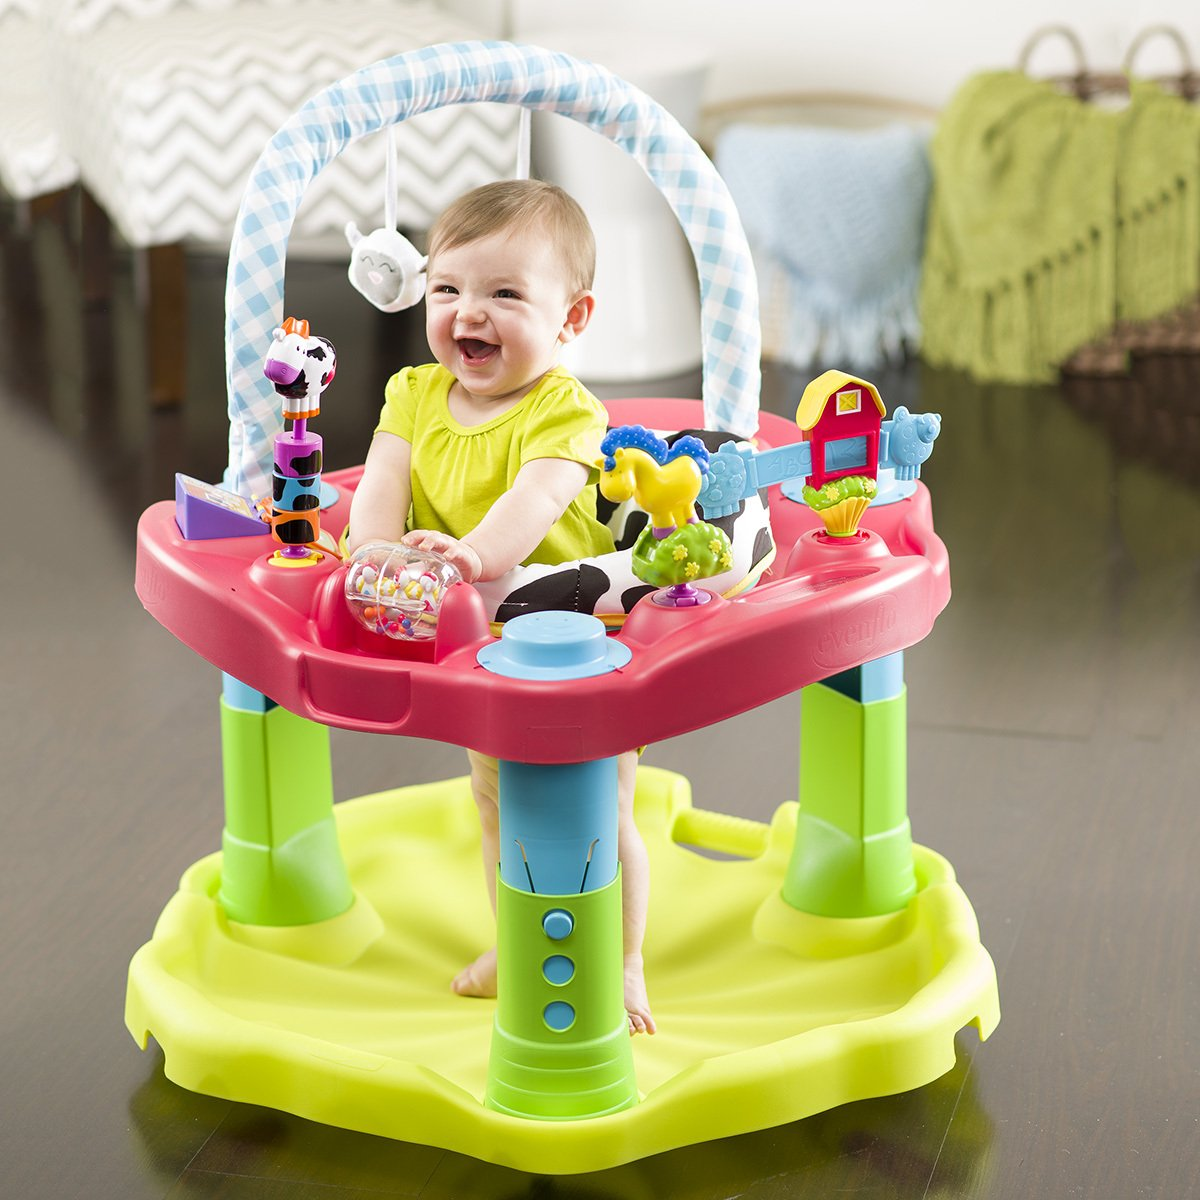 de75f3cd7 Amazon.com   Evenflo Exersaucer Moovin   Groovin Activity Center   Baby